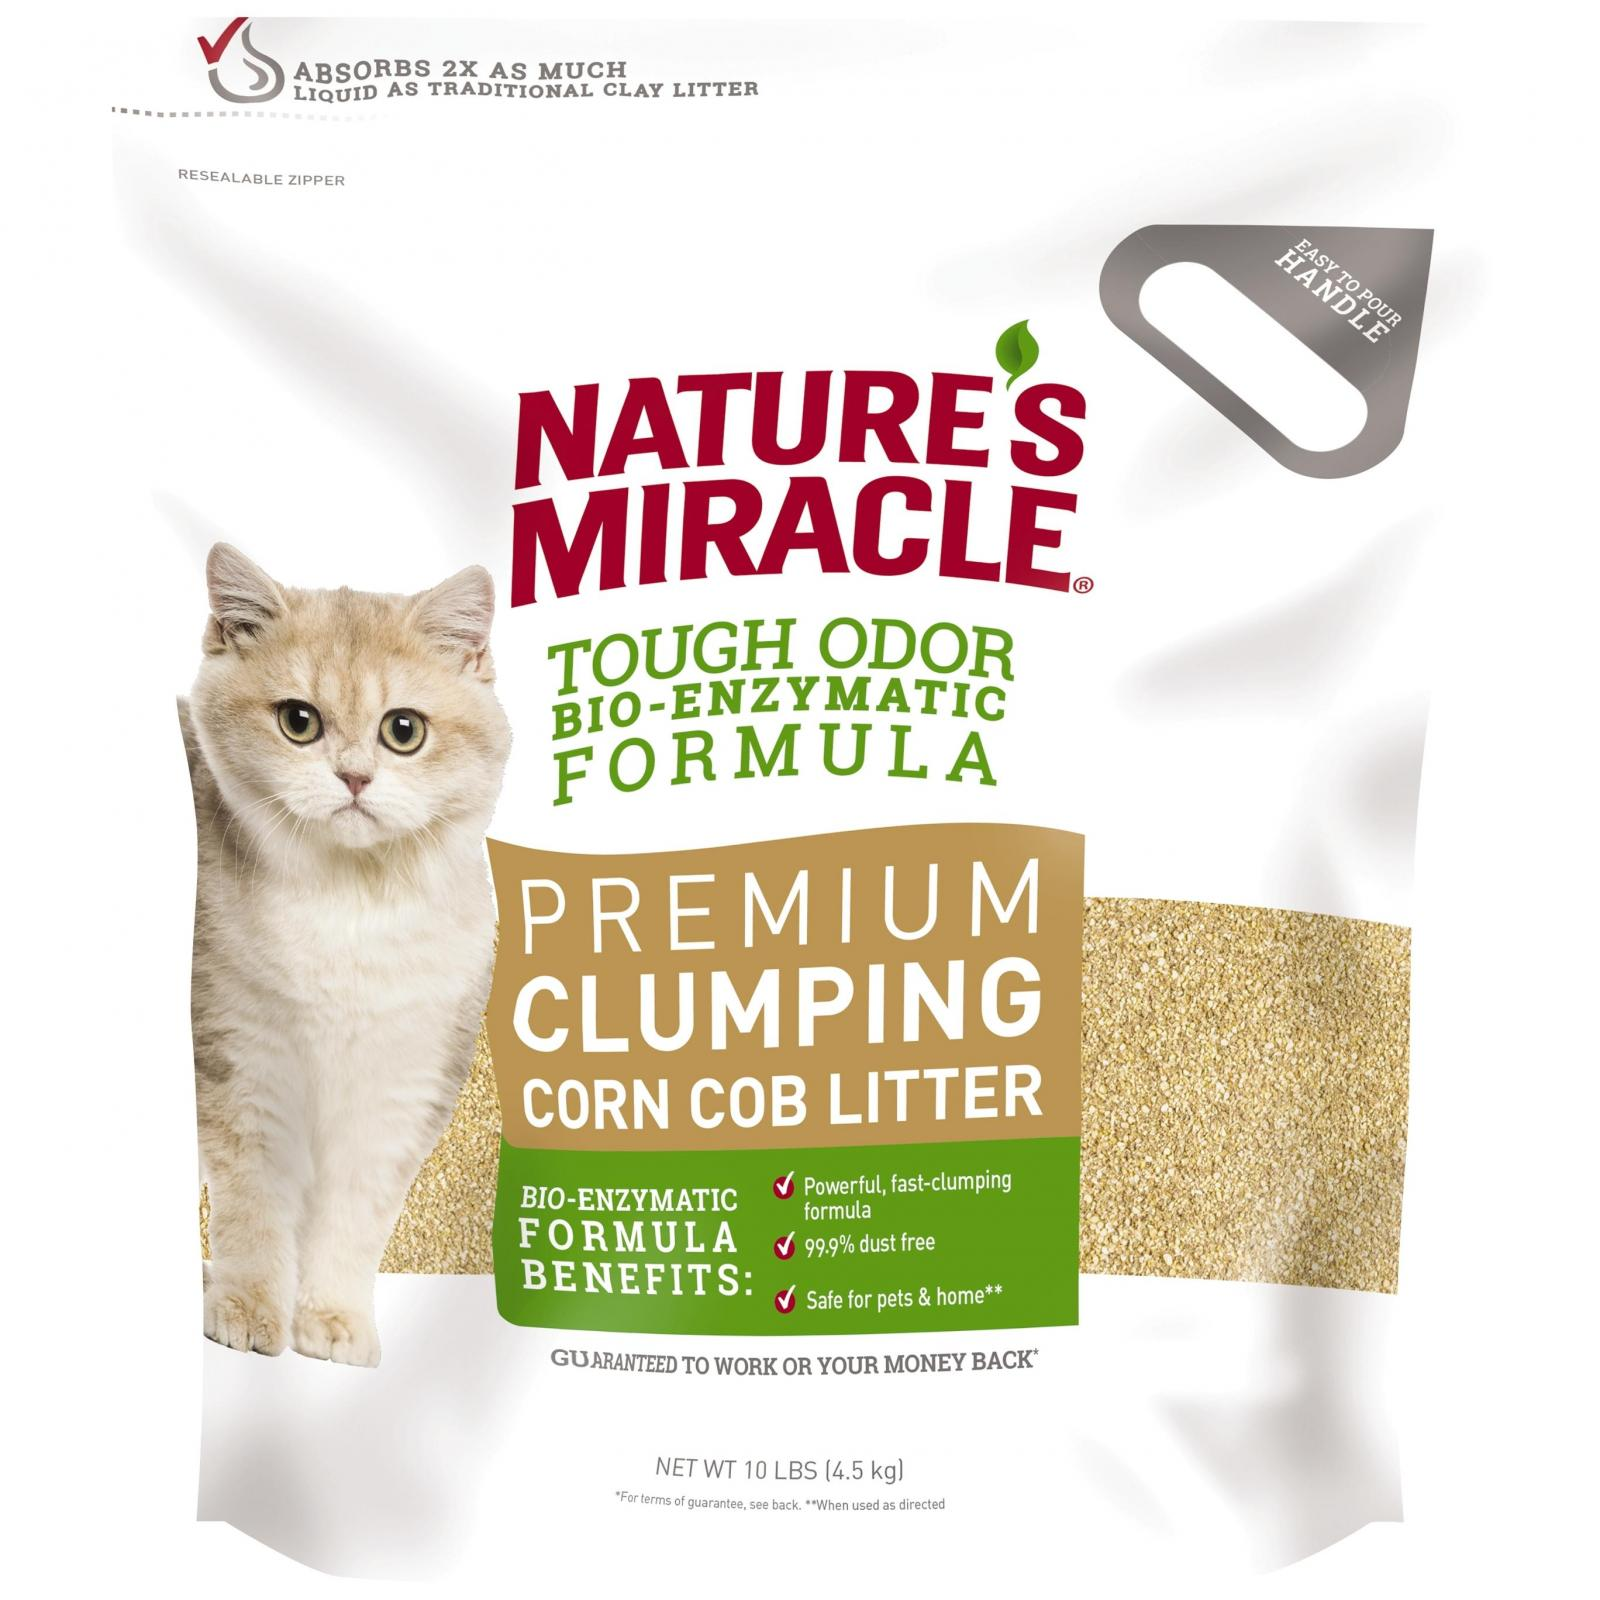 Natures Miracle Nature's Miracle Premium Corn Cob Clumping Cat Litter 4.5Kg